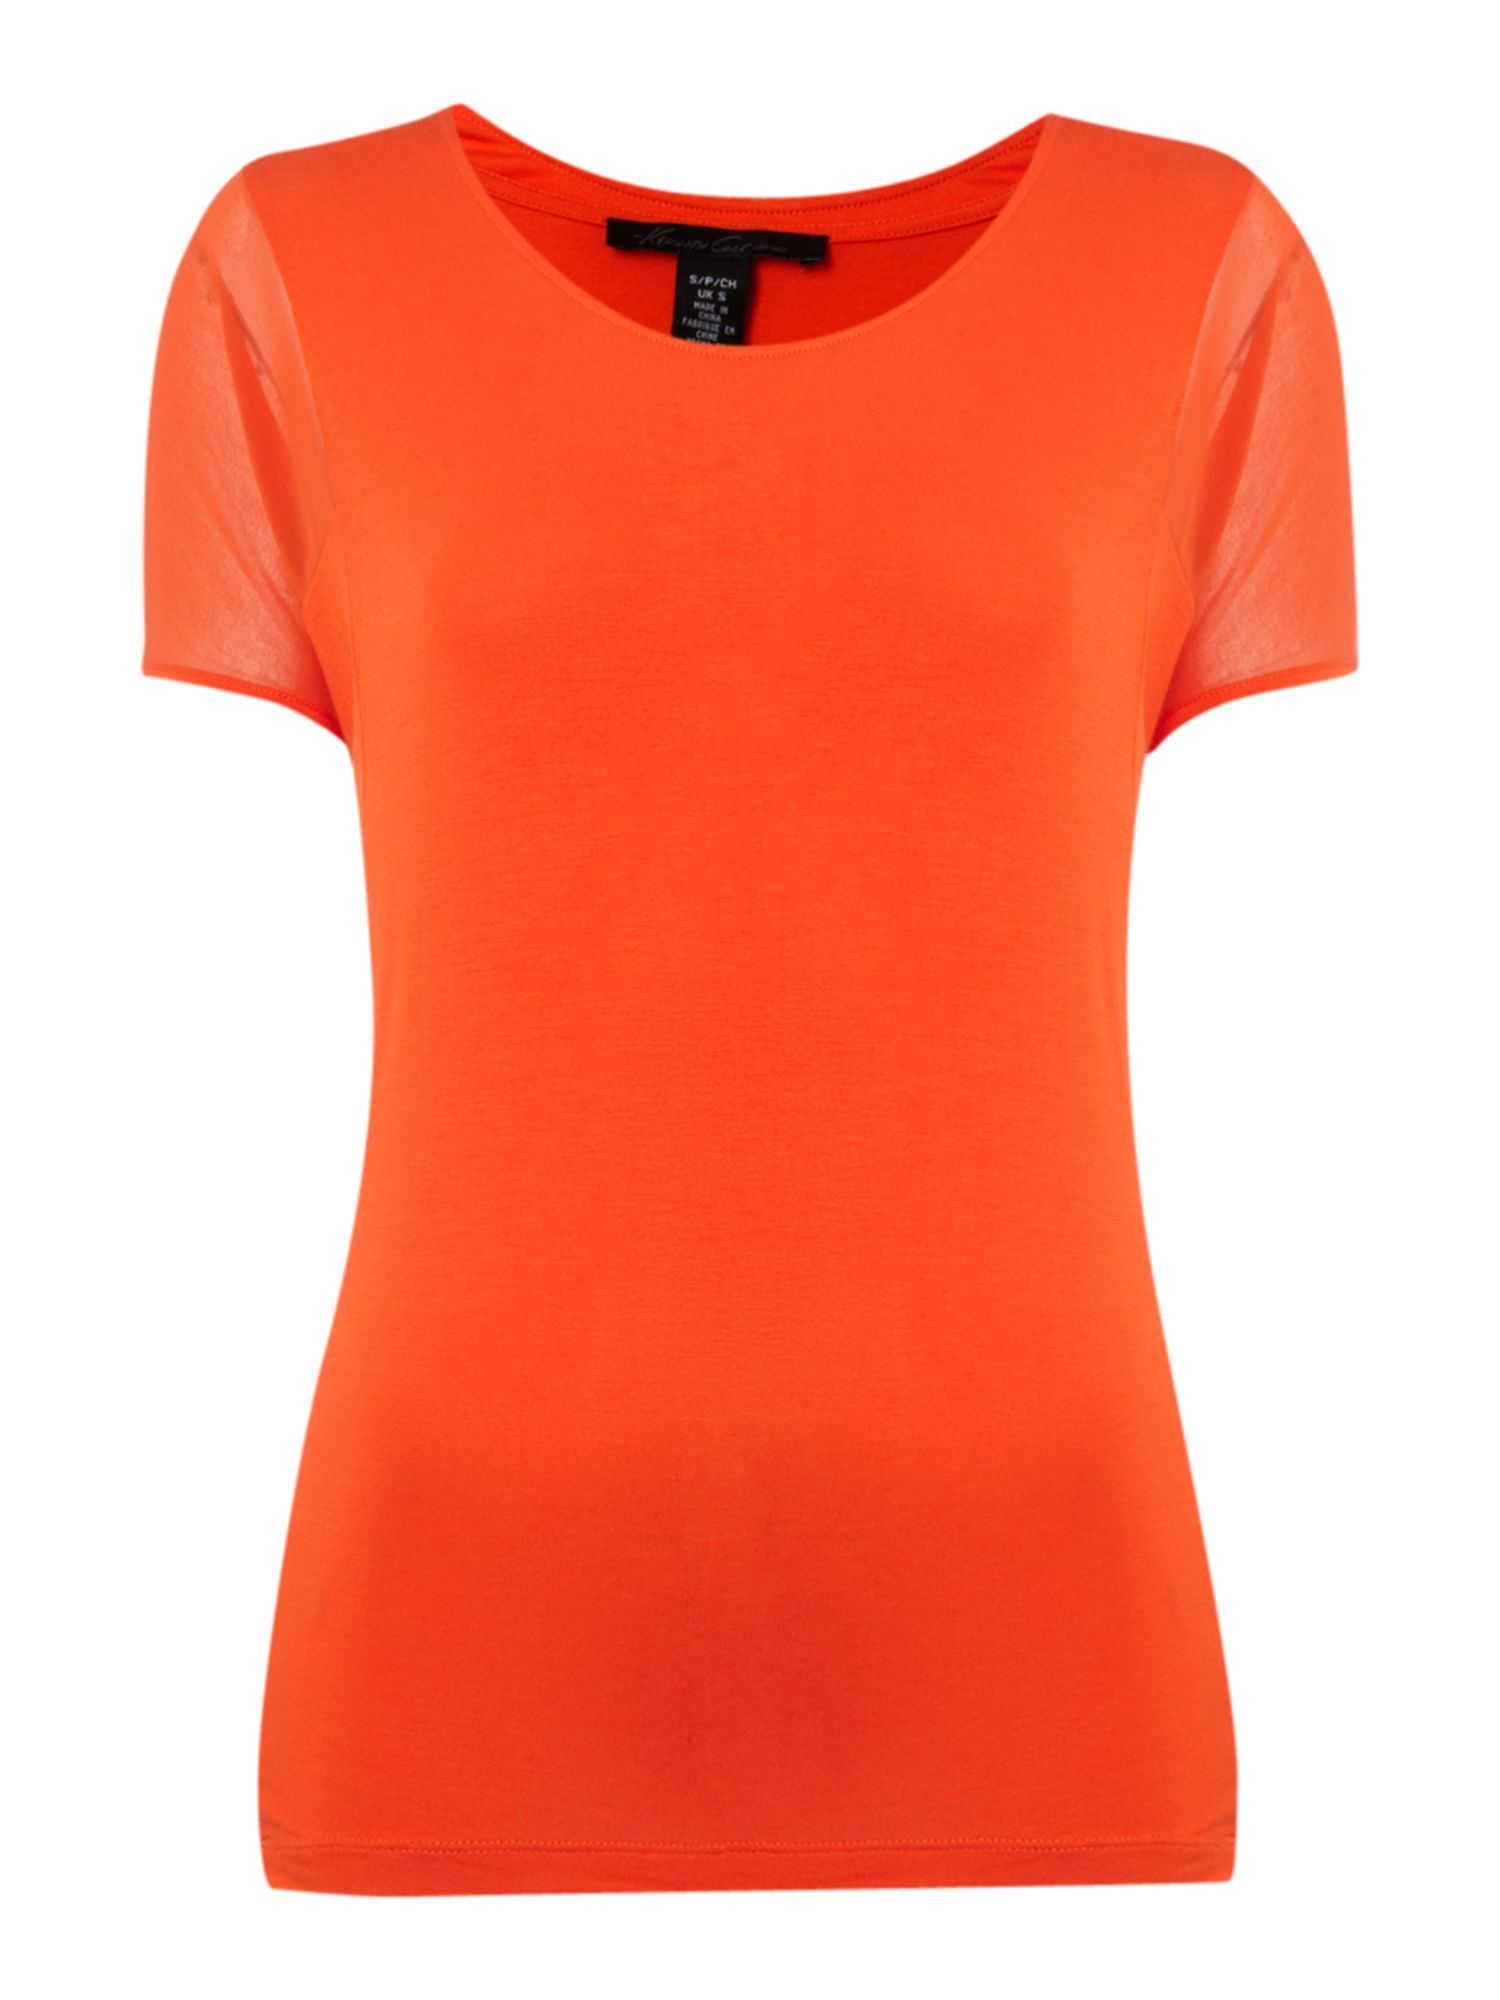 Women's Oversized Tee Shirt, Coral - neckline: round neck; pattern: plain; waist detail: fitted waist; style: t-shirt; predominant colour: coral; occasions: casual; length: standard; fibres: polyester/polyamide - stretch; material texture: jersey; fit: body skimming; trends: brights; sleeve length: short sleeve; sleeve style: standard; pattern type: fabric; pattern size: standard; texture group: jersey - stretchy/drapey